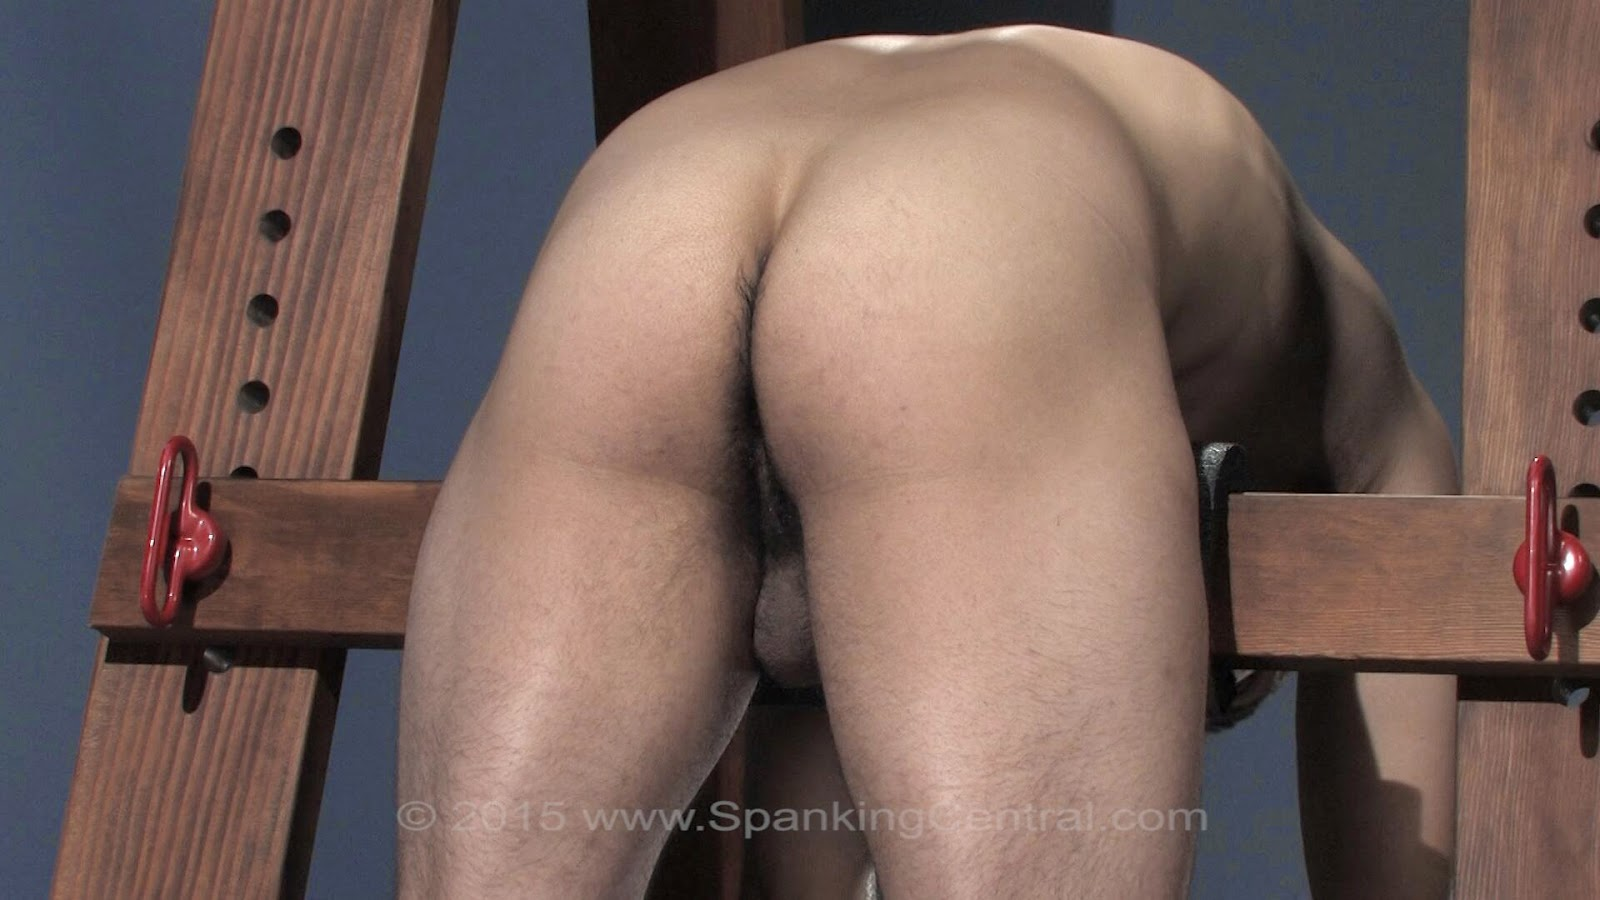 Spanking marines gay good anal training